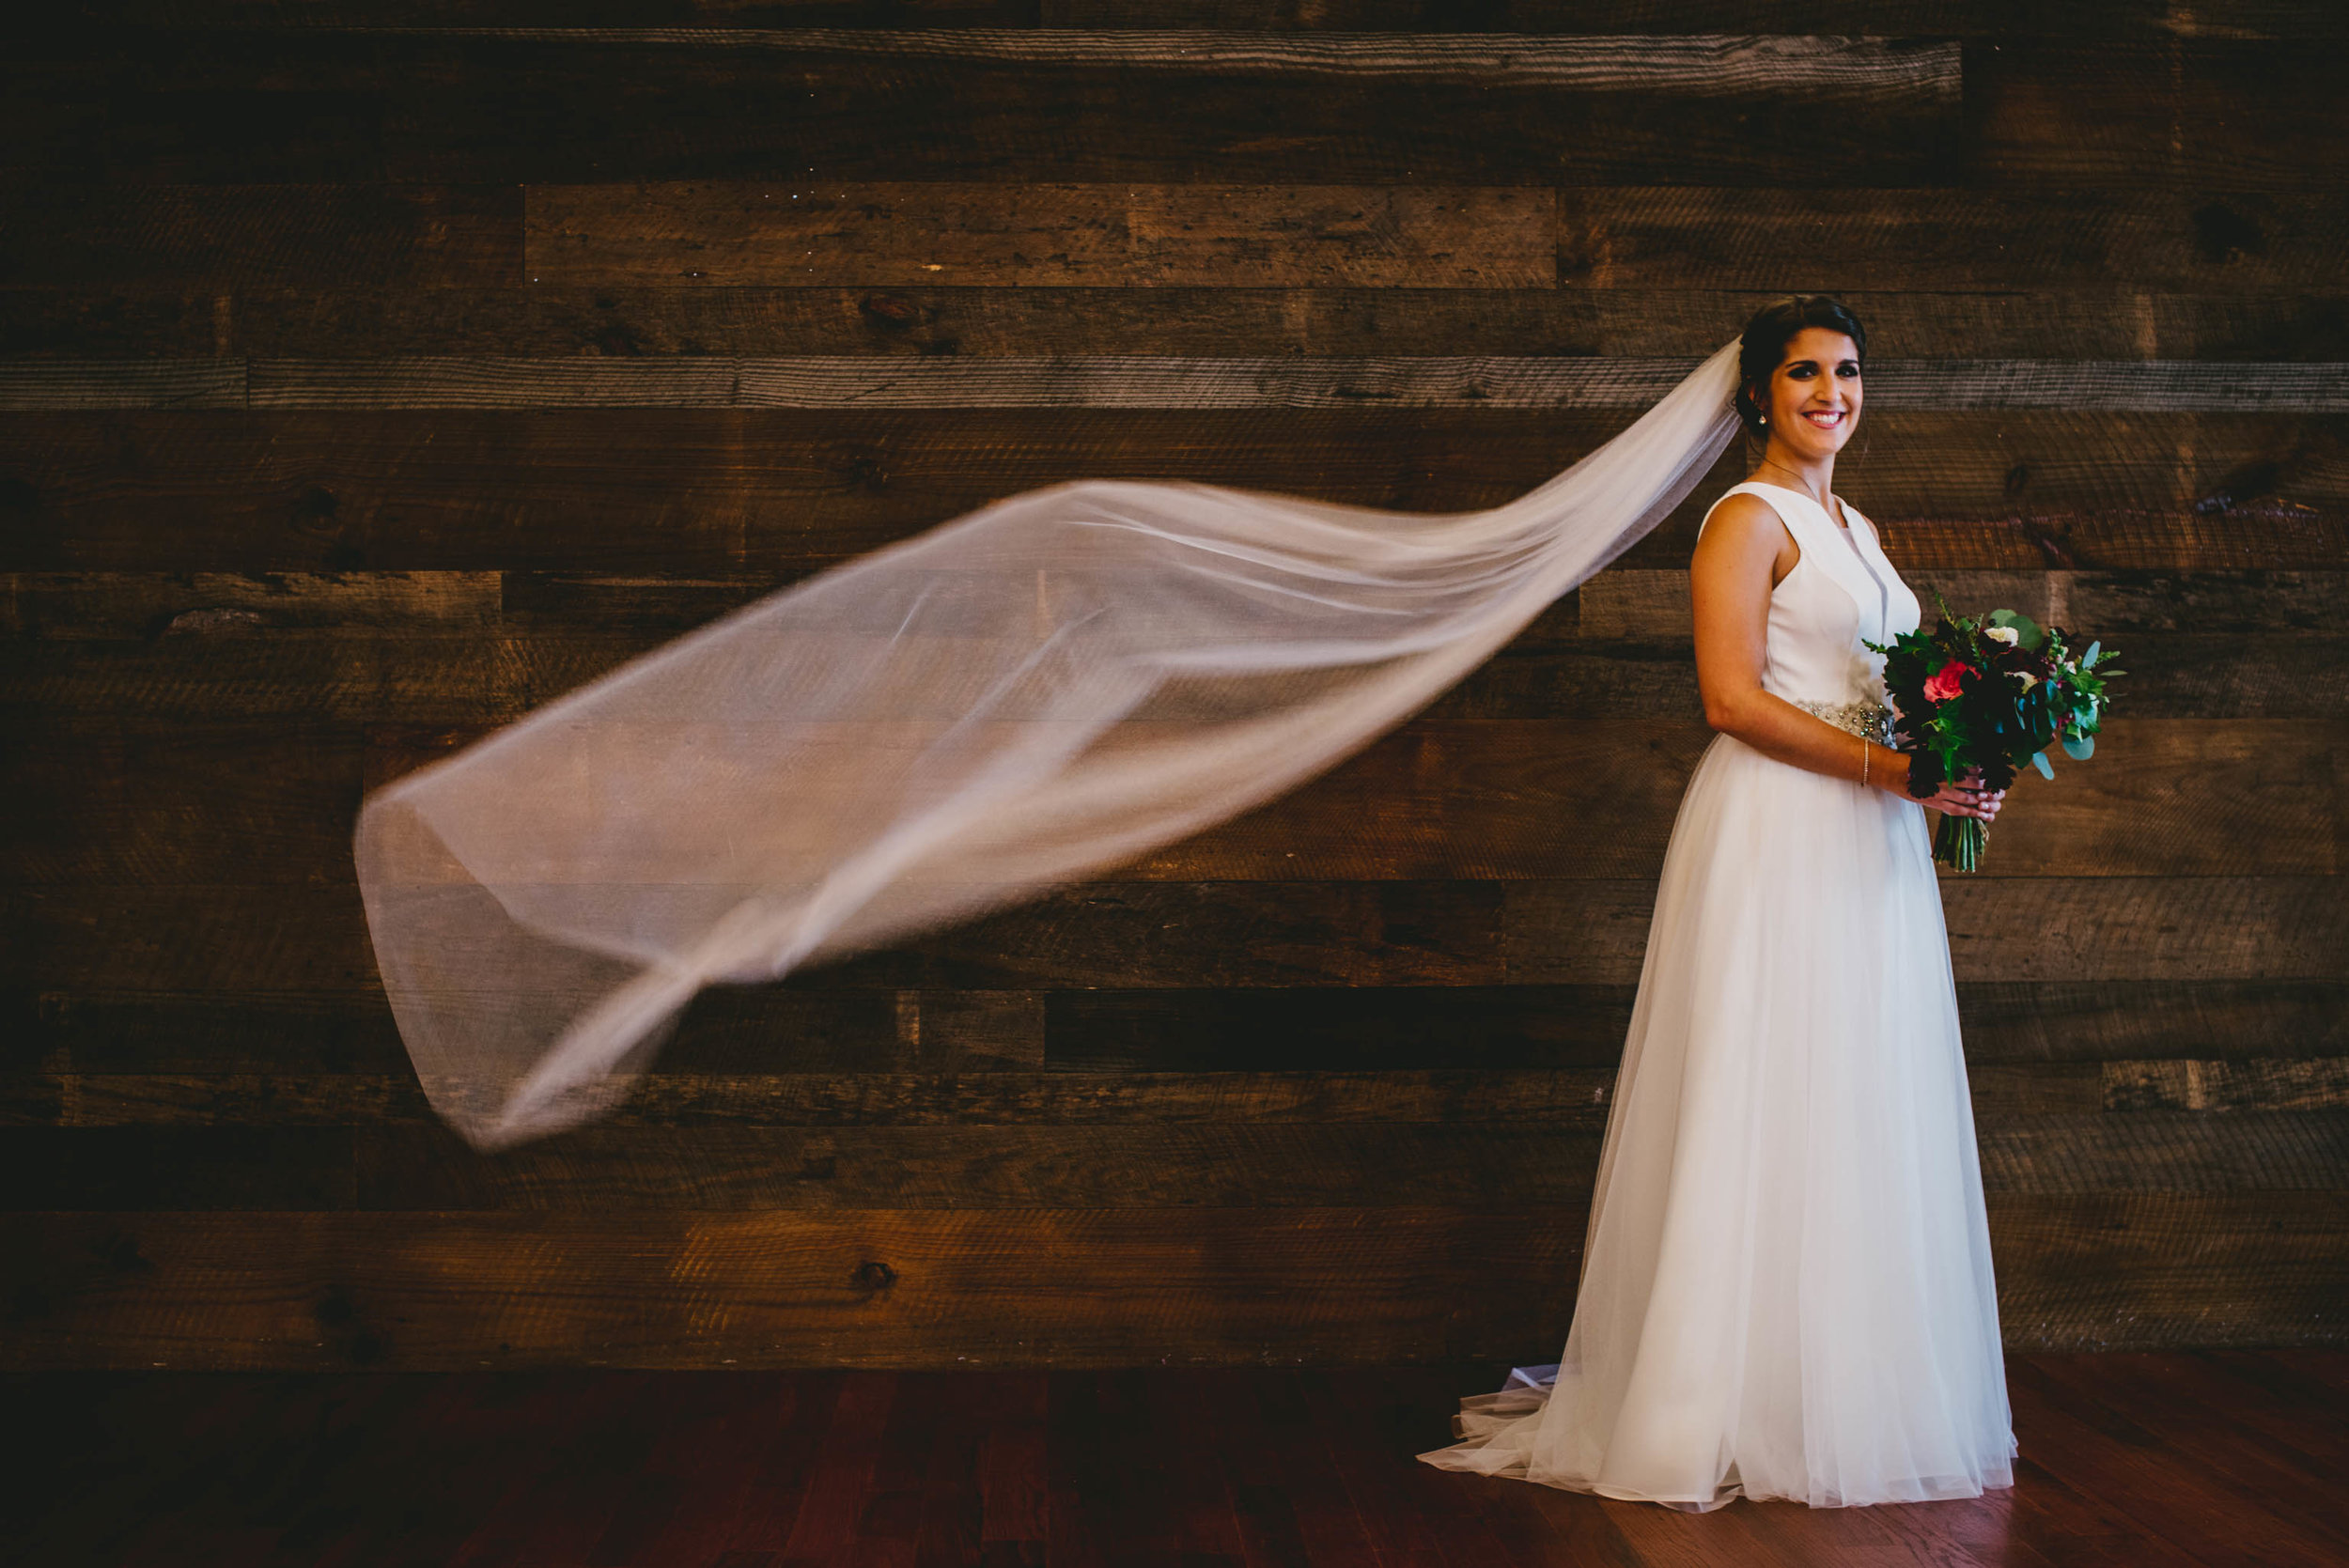 brides-flowing-veil-and-eugenia-couture-dress-photo.jpg